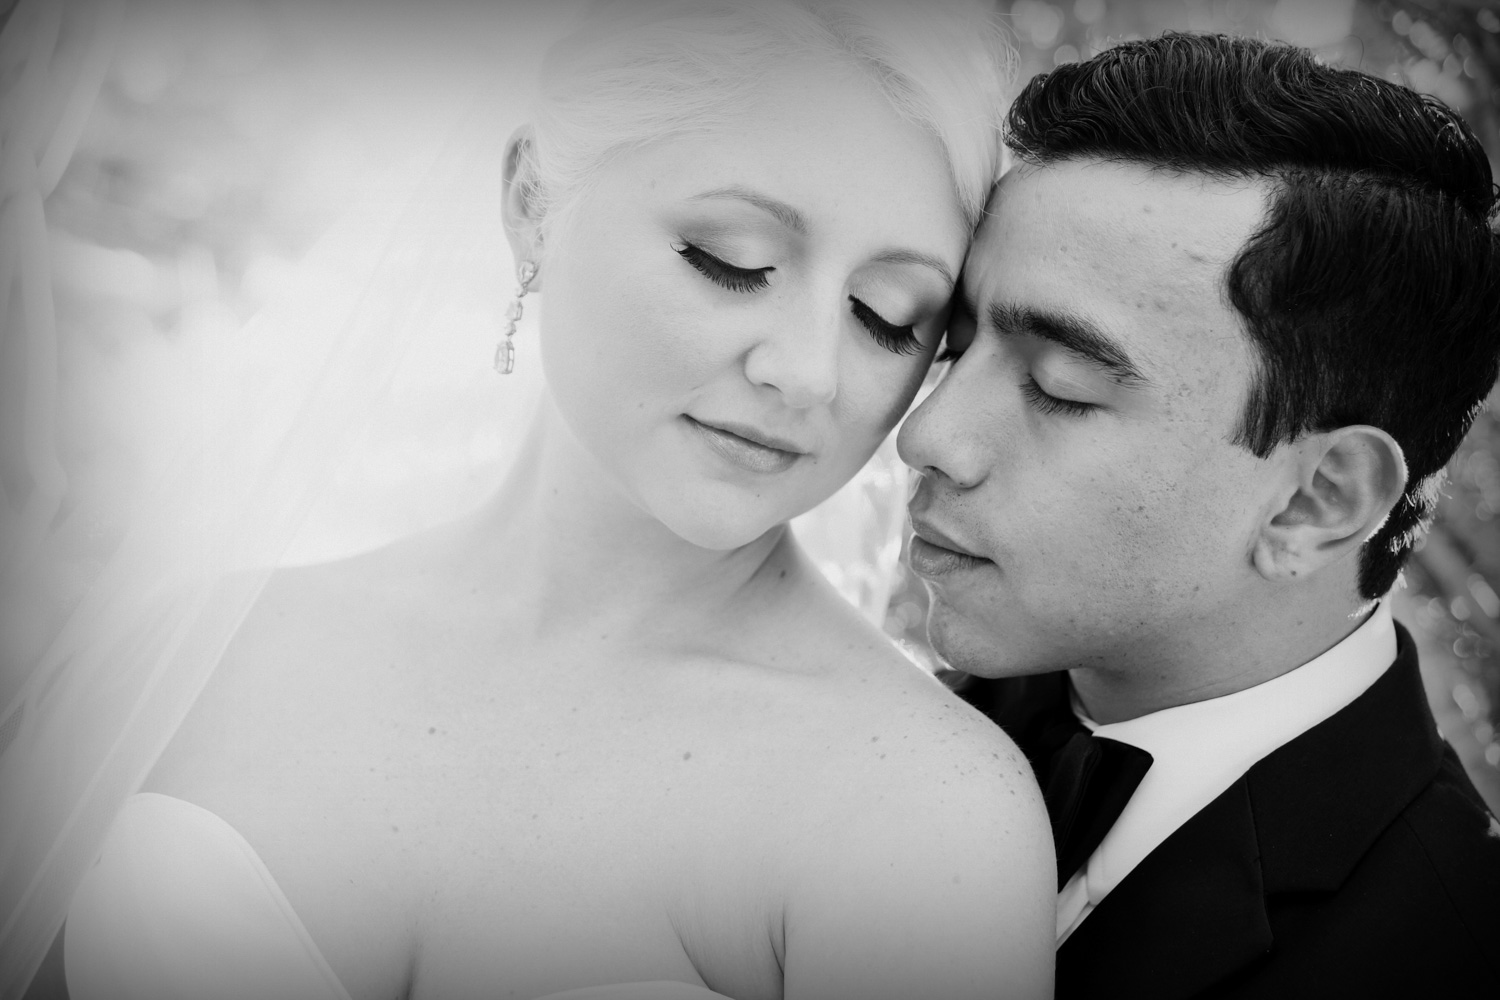 Wedding Photographers Chicago | We Offer Less Stress For You